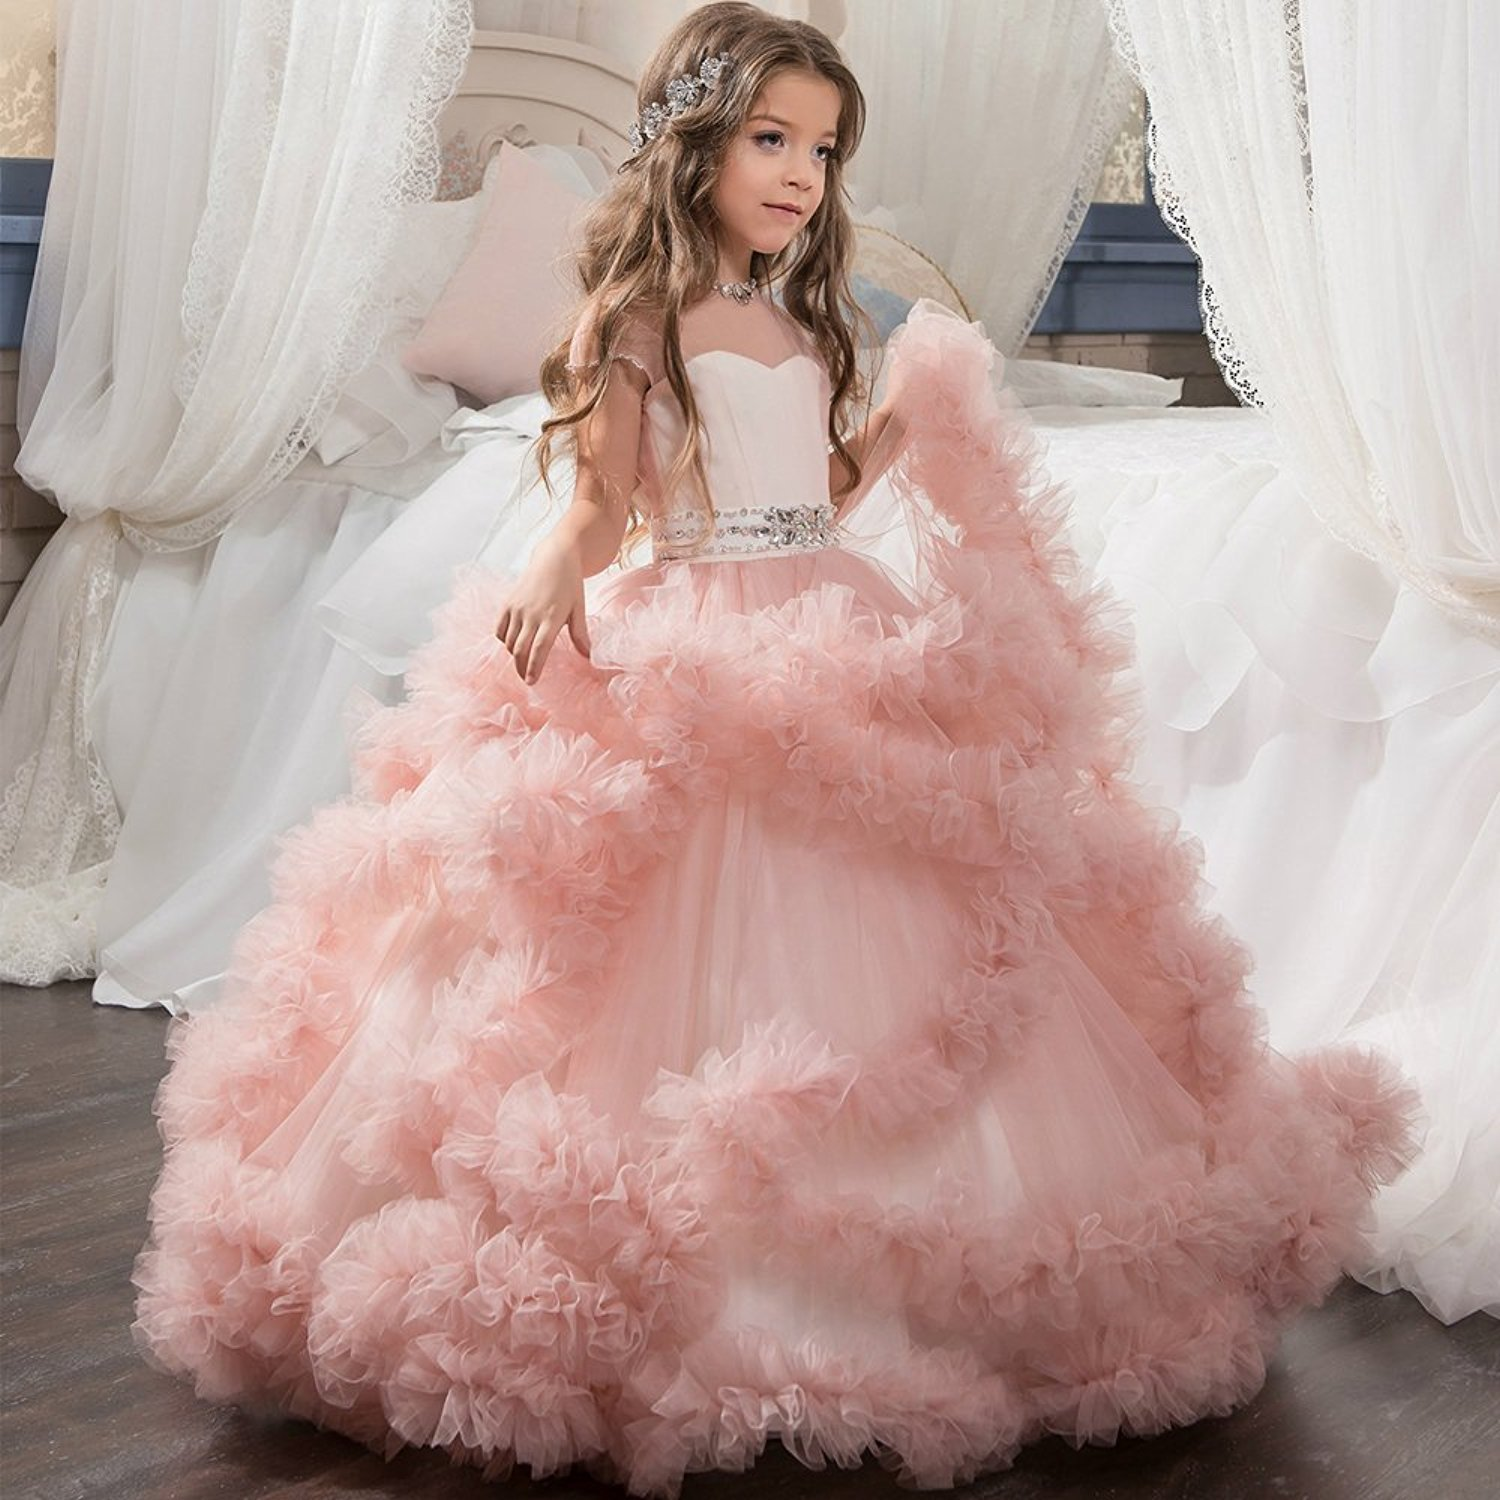 Children Princess Dress Flower Girl Wedding Dresses Girls Evening Party Dress Tutu Costumes H358 gt1749v cartridge turbine for ford galaxy 1 9 tdi afn avg 81kw 85kw turbo charger core assy chra 701855 0006 95vw9g438ca